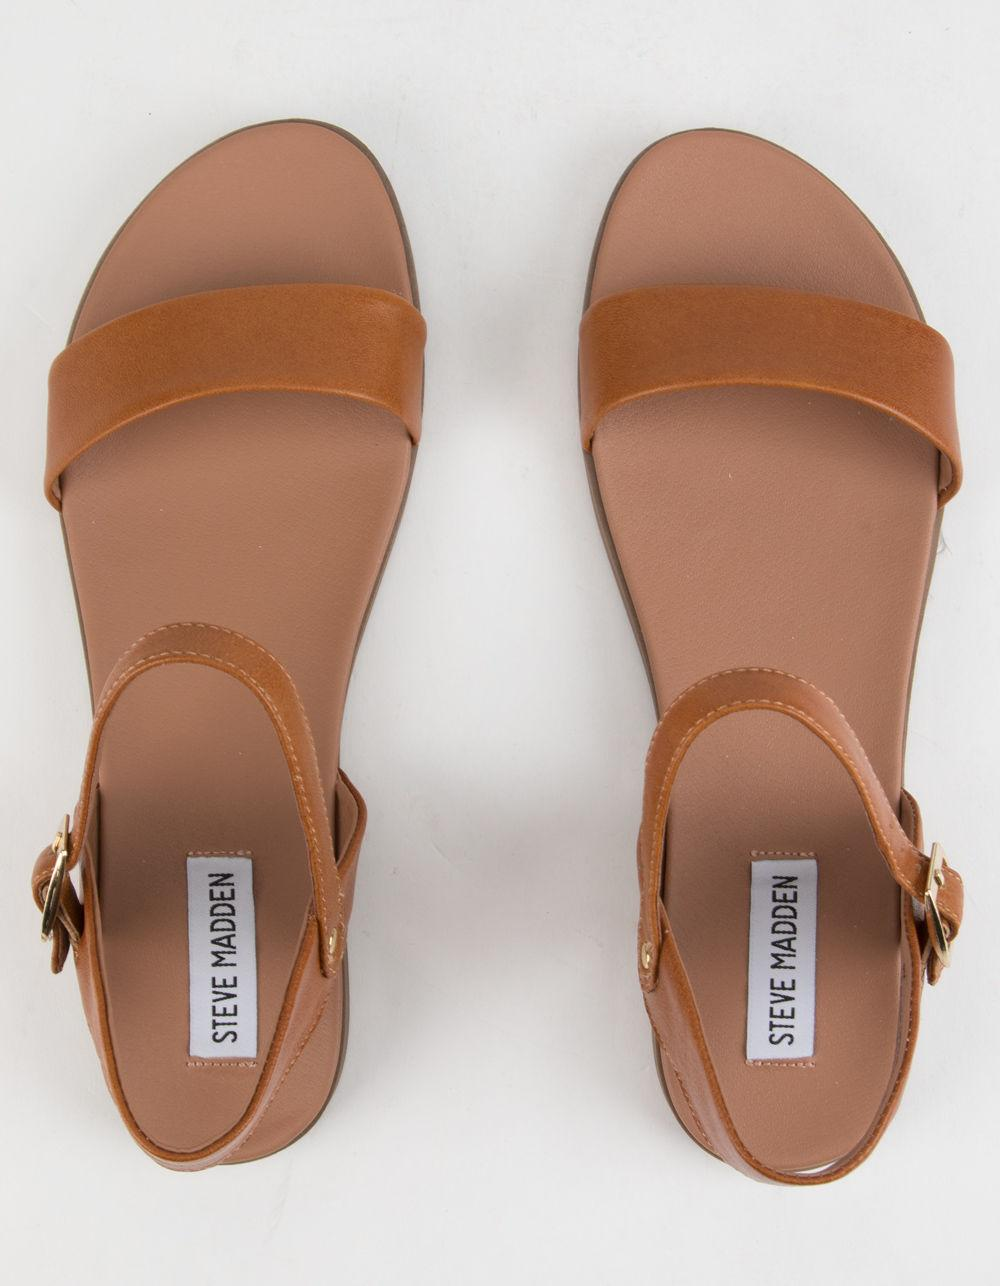 6f4921fc13f Lyst - Steve Madden Dina Tan Womens Sandals in Brown